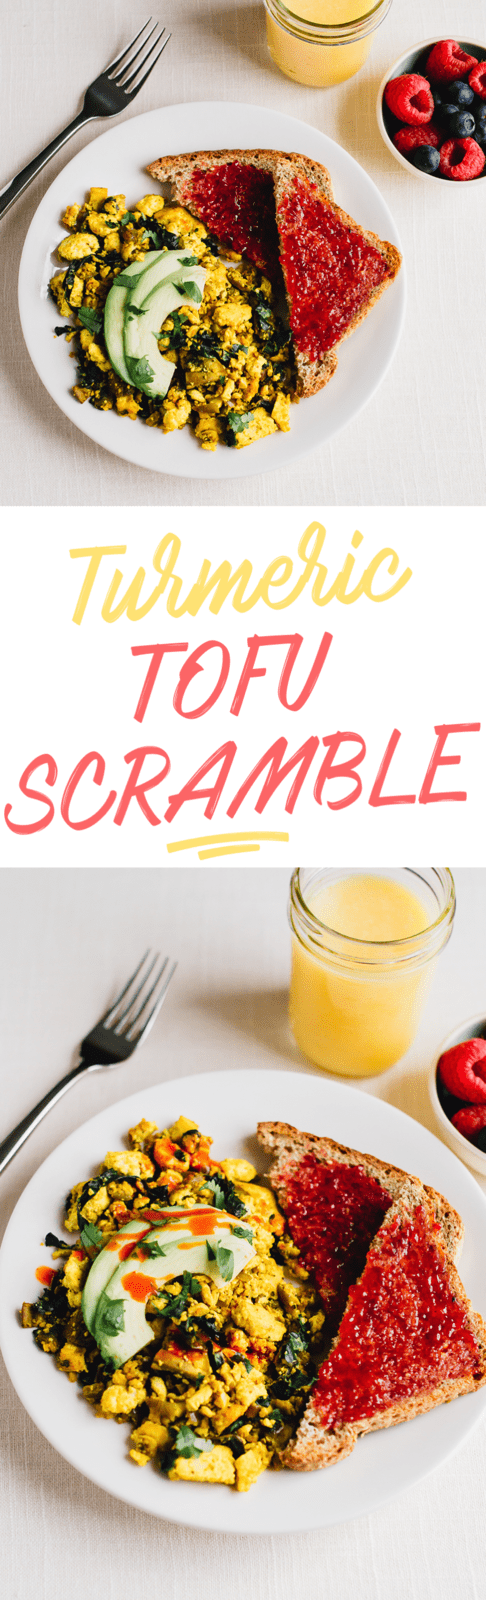 Move over eggs! You'll love the flavor of this vegan tofu scramble seasoned with turmeric, cumin and nutritional yeast! Delicious served with sliced avocado and toast.